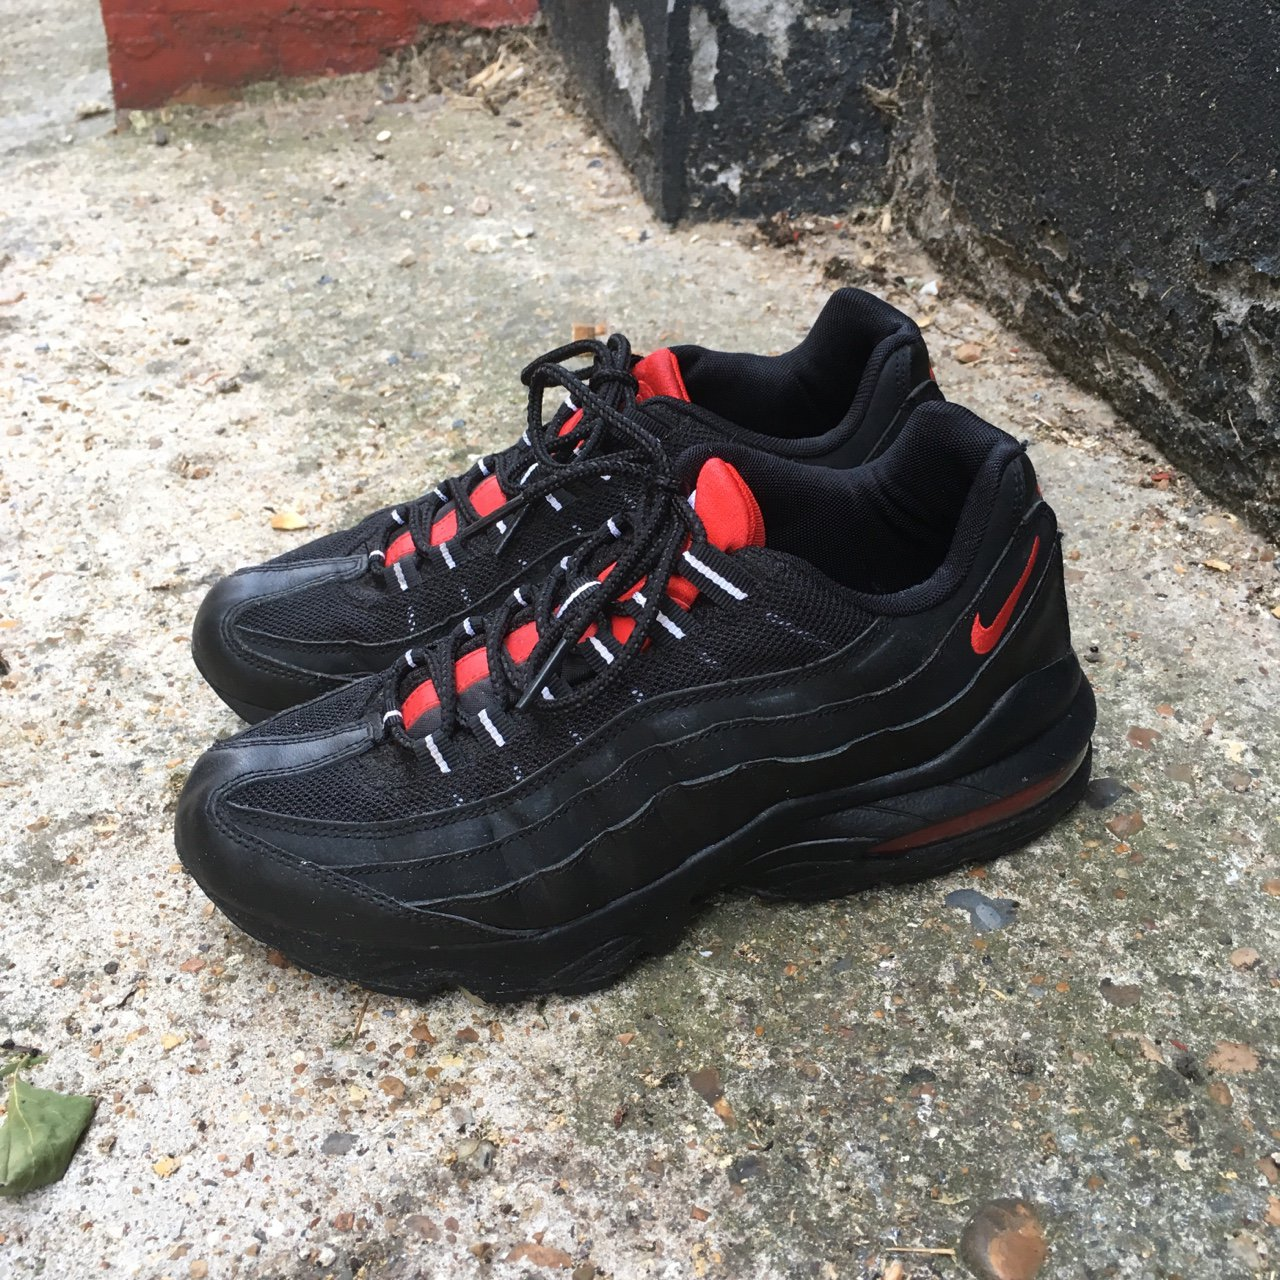 sports shoes 965d8 259d1 nike air max 95 95s used black red white uk size 5! a few to - Depop